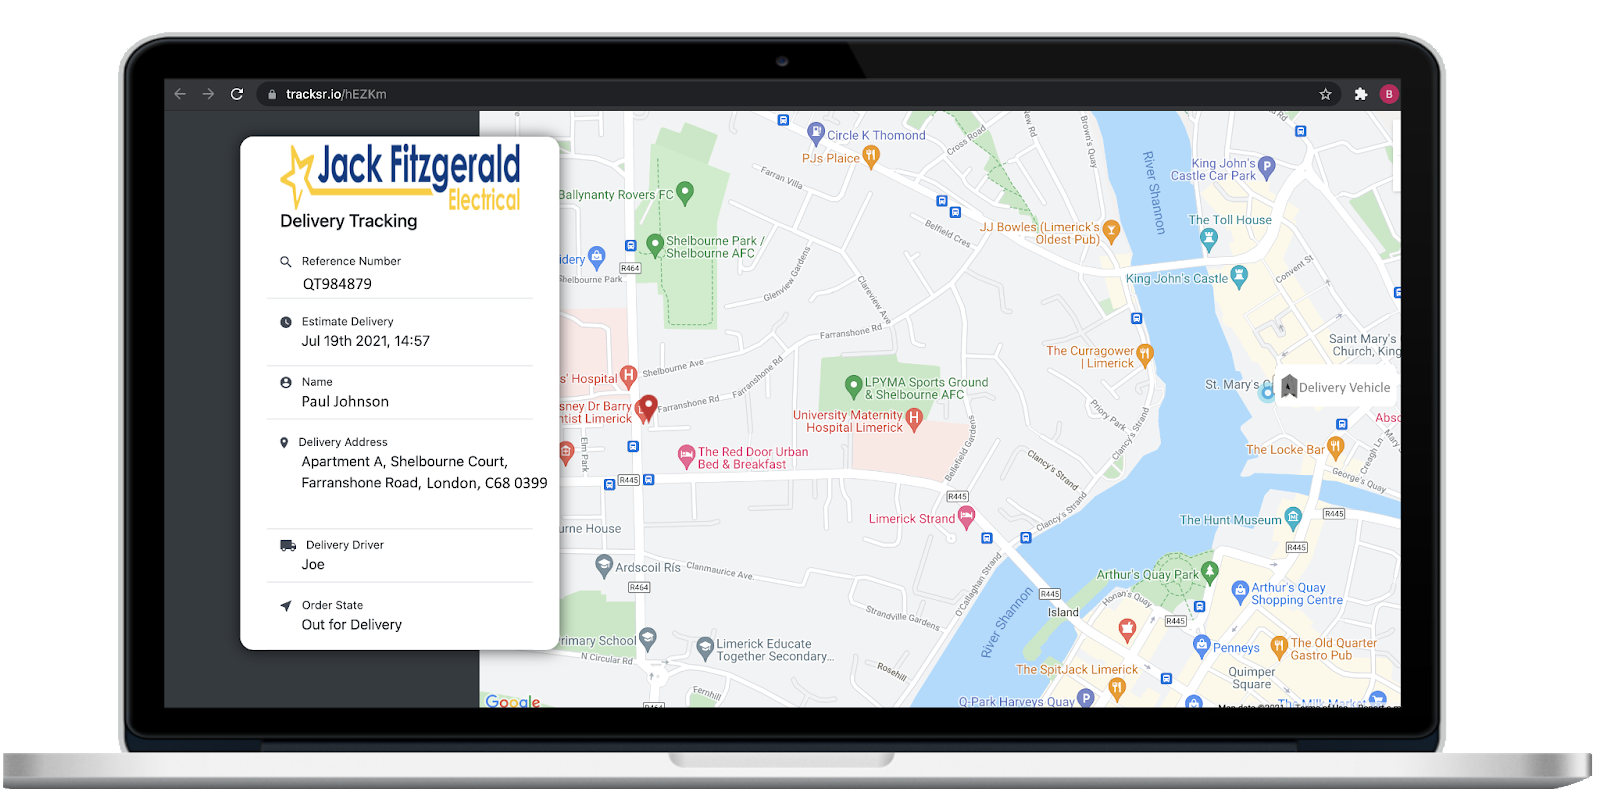 SmartRoutes Customer Tracking Portal